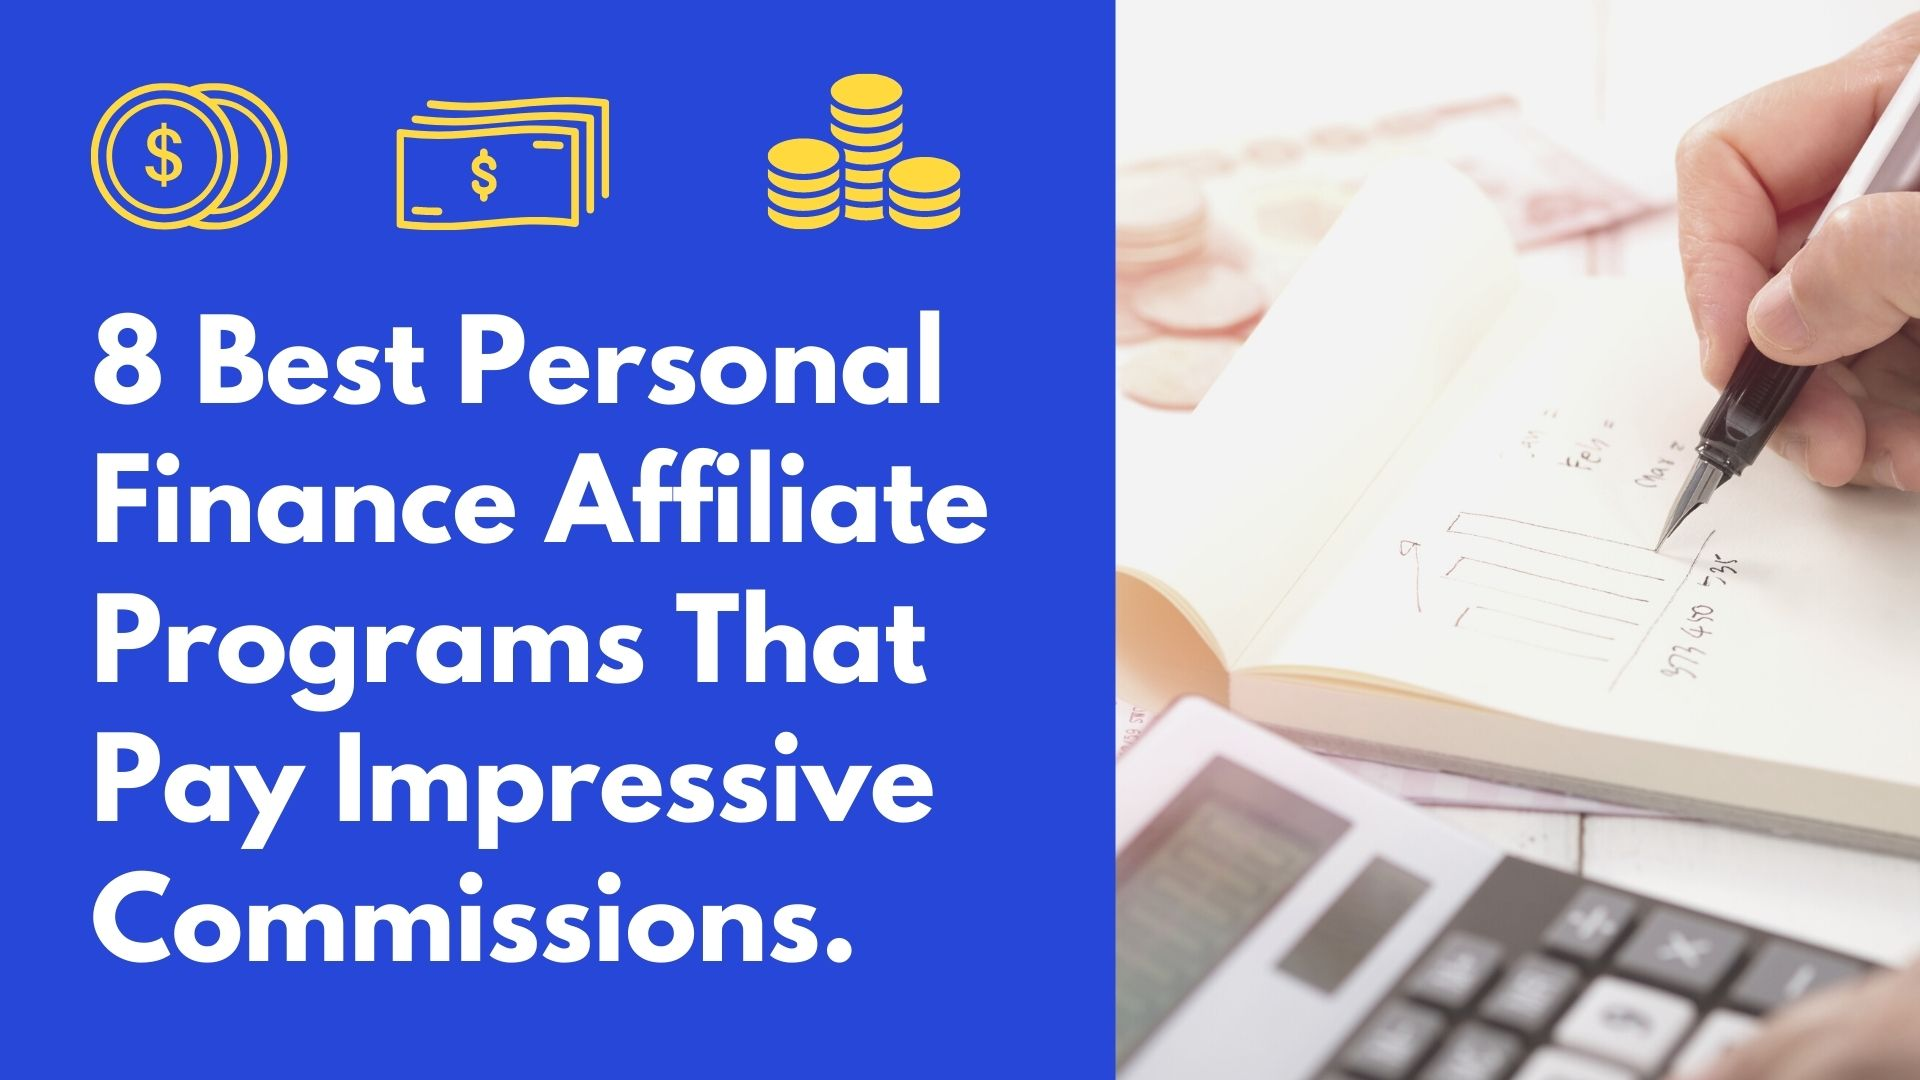 Best Personal Finance Affiliate Programs